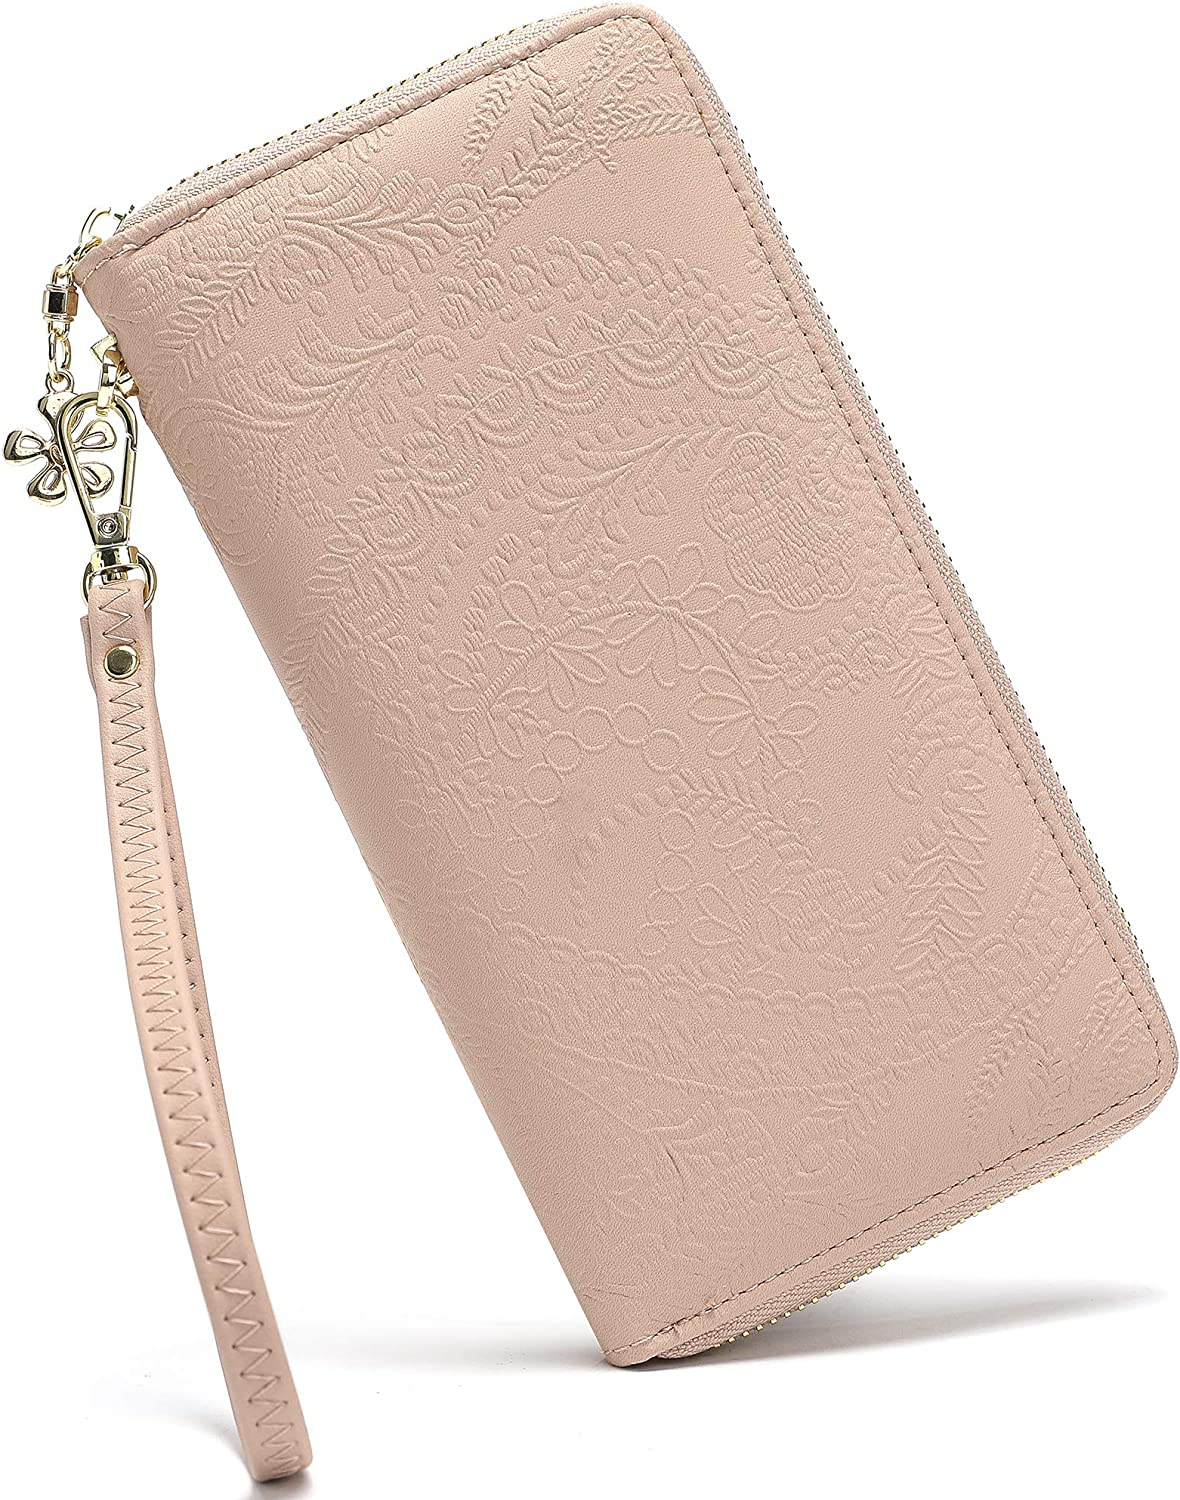 Women Large Wallet Soft PU Leather Phone Clutch Purse with Wrist Strap Zip Around …